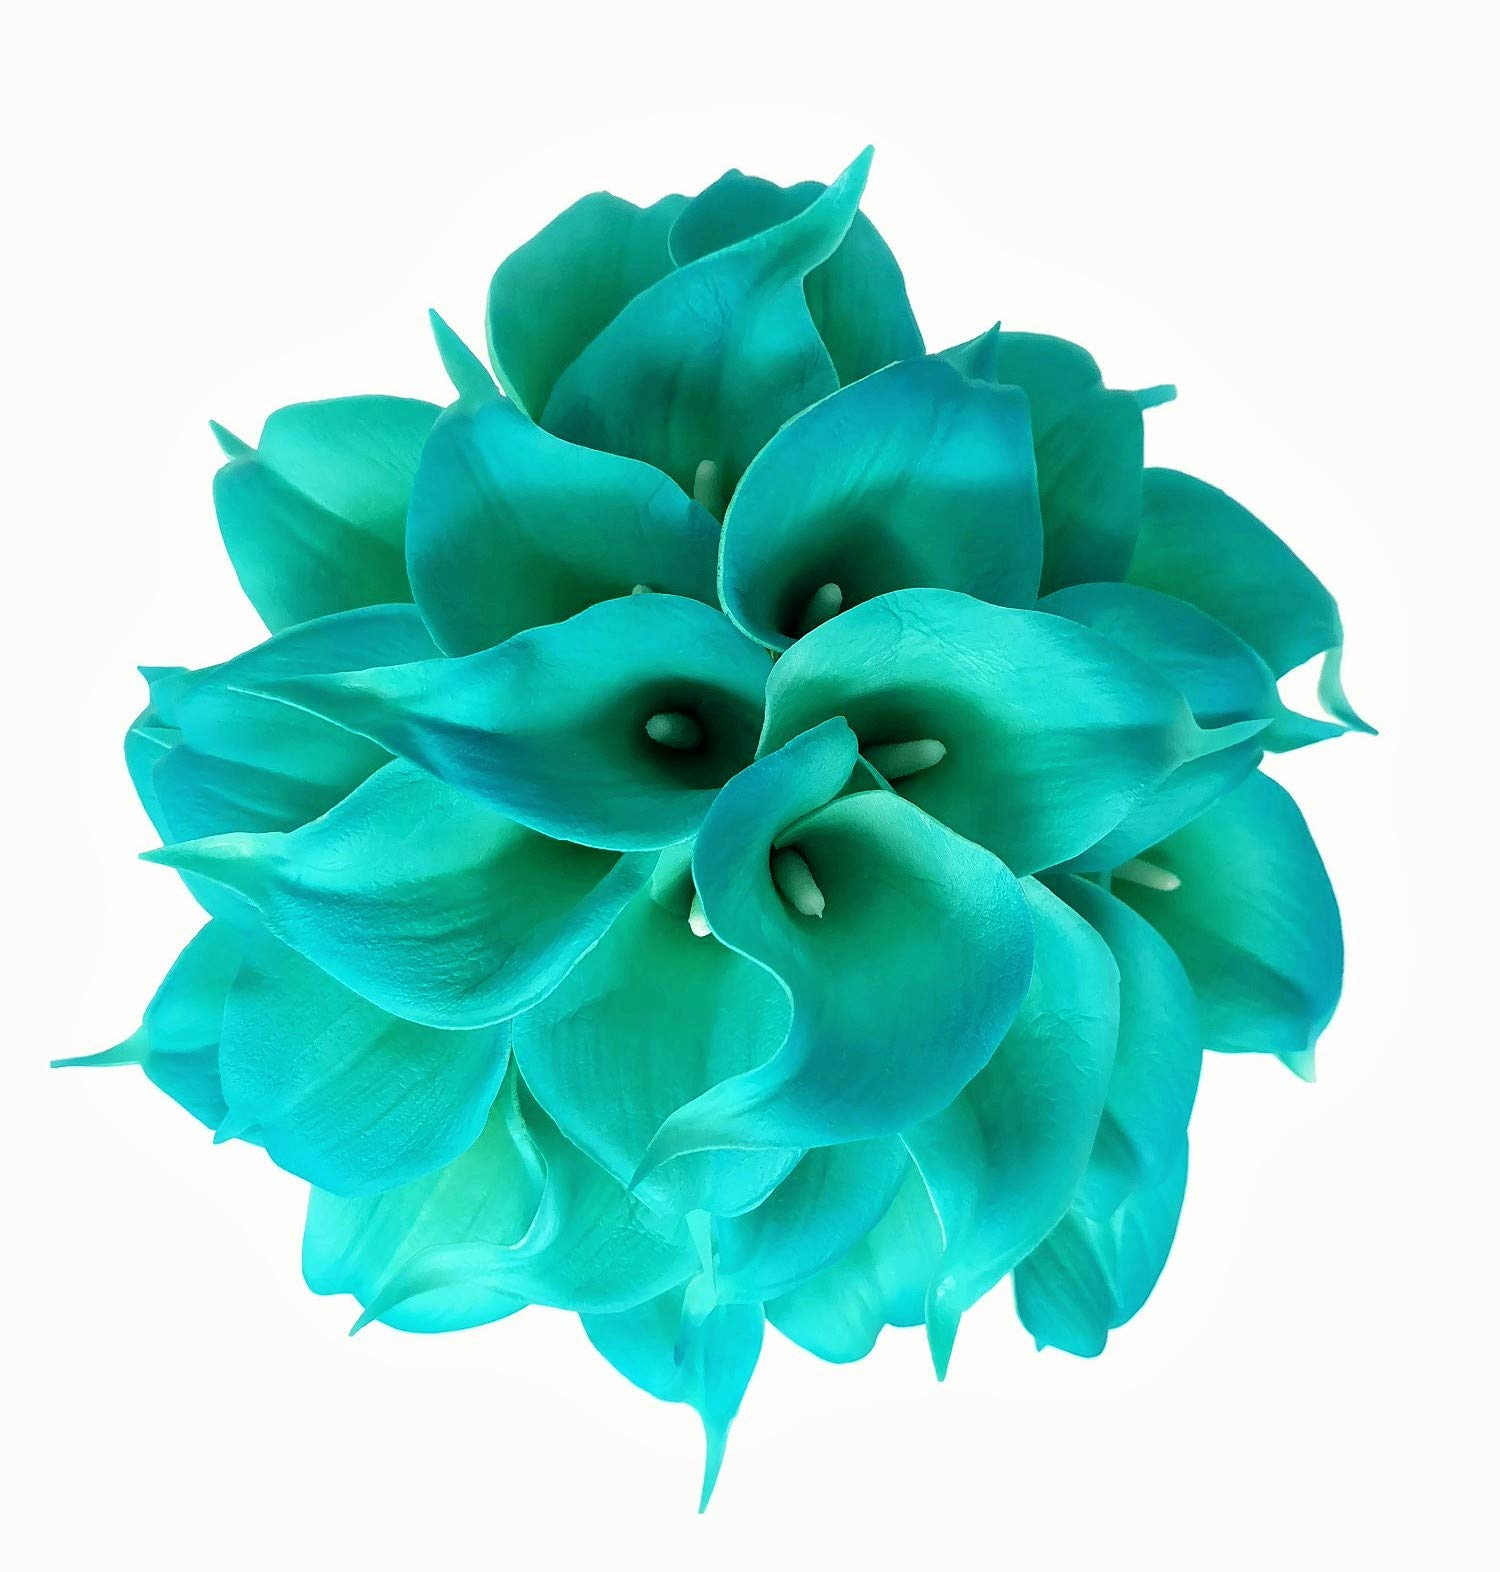 """Meide Group USA 14"""" Real Touch Latex Calla Lily Bunch Artificial Spring Flowers for Home Decor, Wedding Bouquets, and centerpieces (18 PCS) (Turquoise)"""